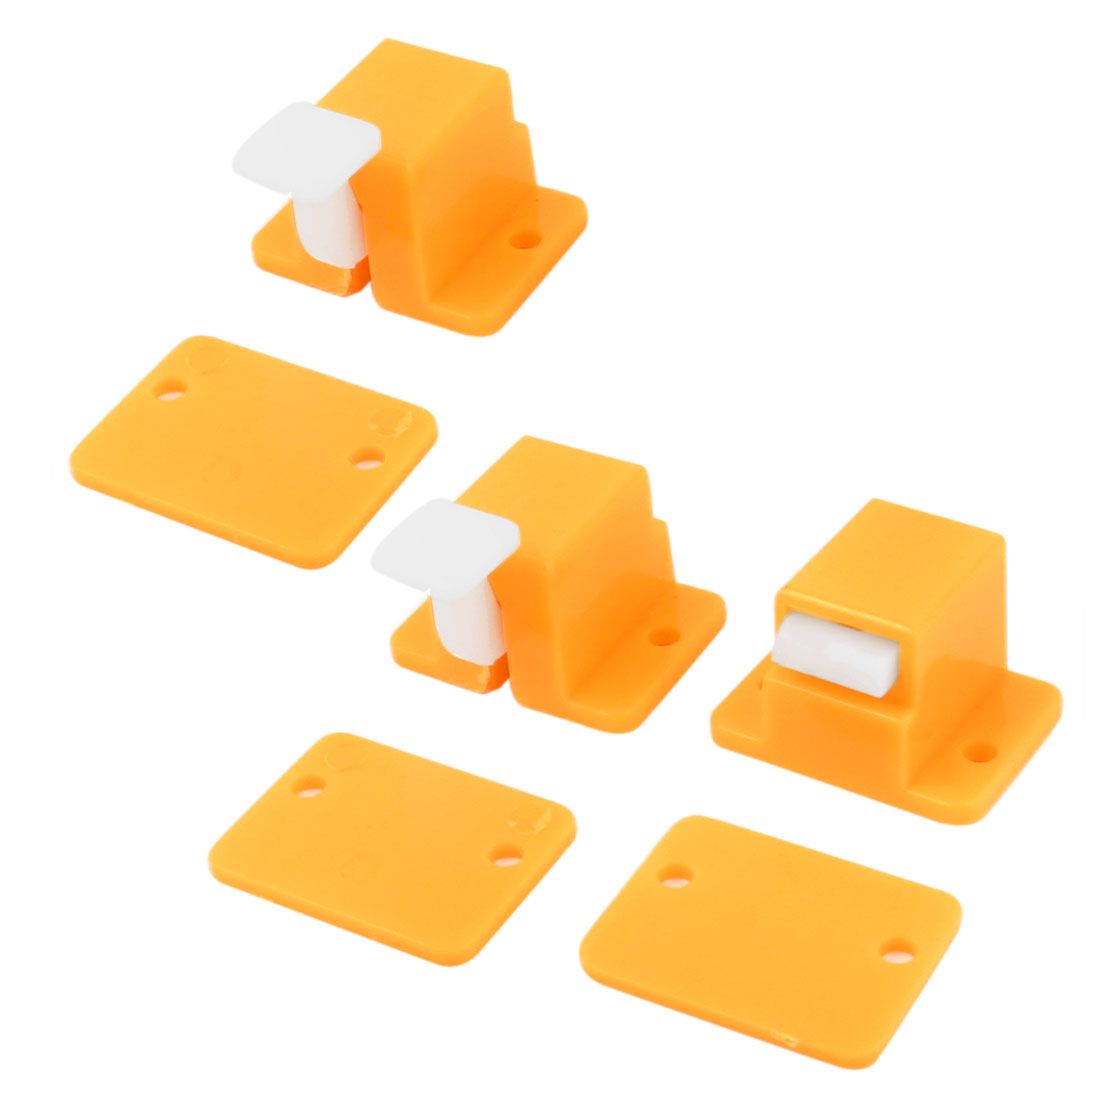 3pcs Yellow White Plastic PCB ICT Prototype Test Fixture Jig Edge Latch w Screws